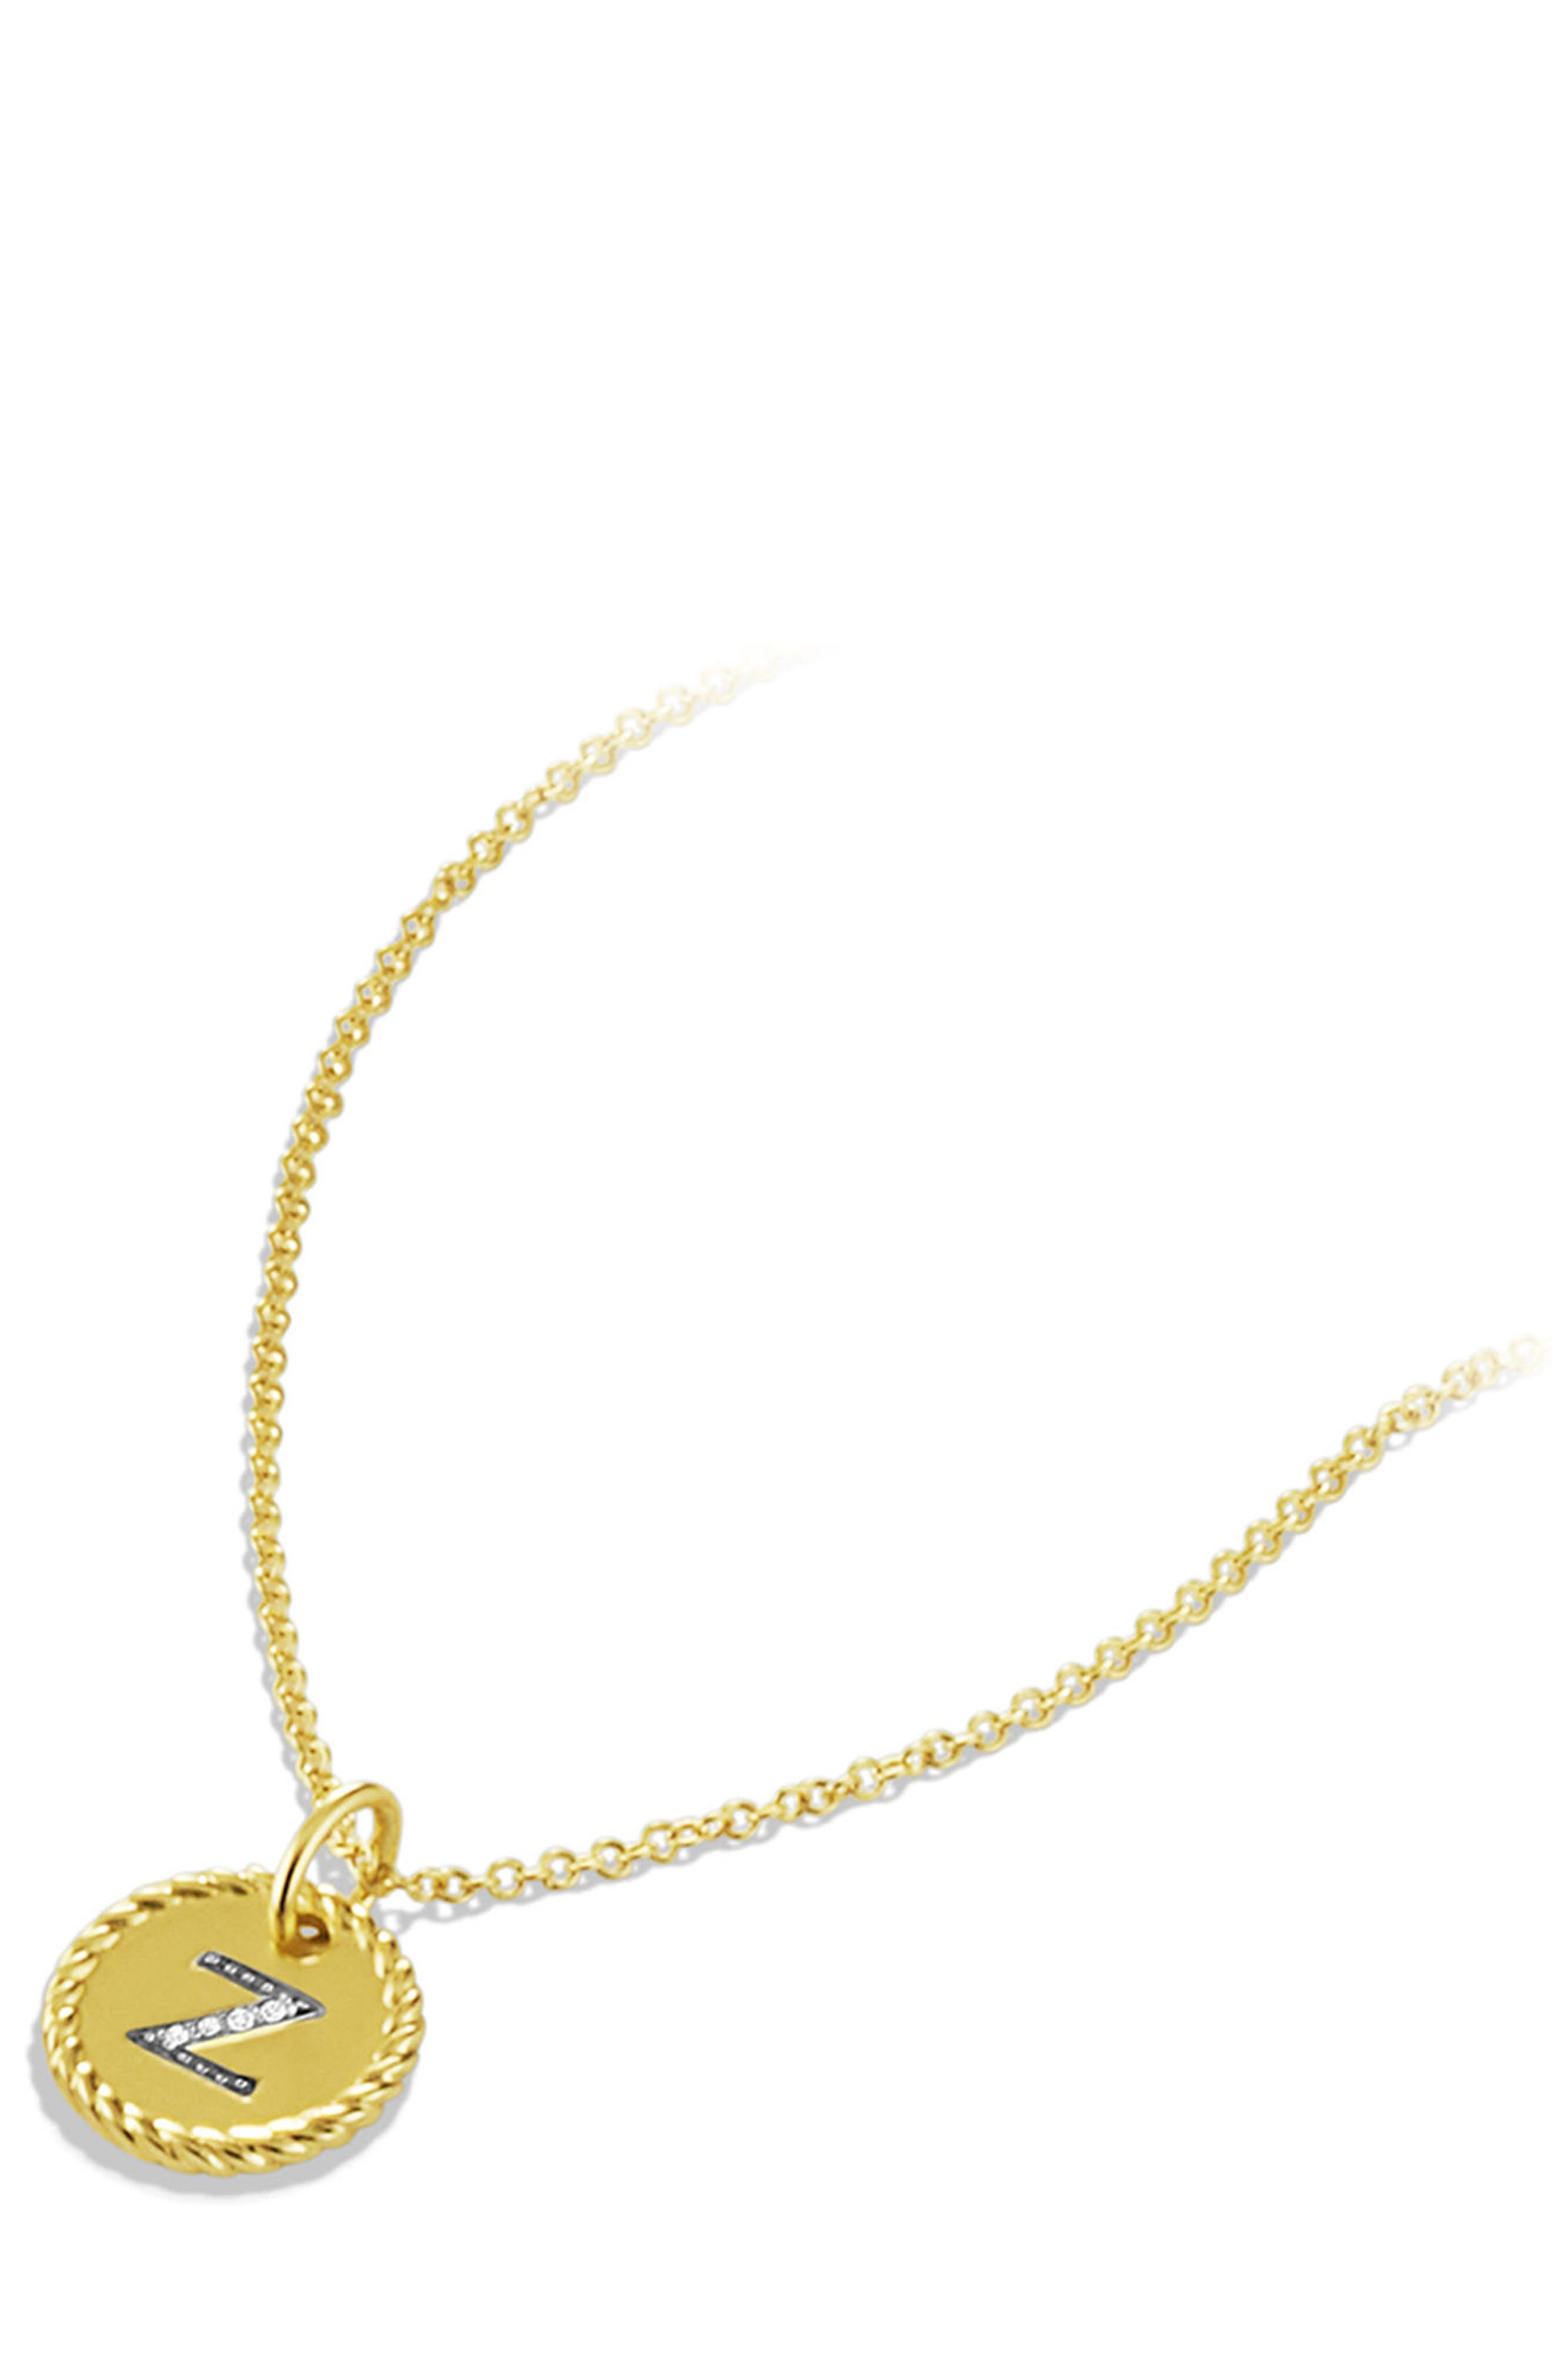 Initial Charm Necklace with Diamonds in 18K Gold,                             Alternate thumbnail 2, color,                             735